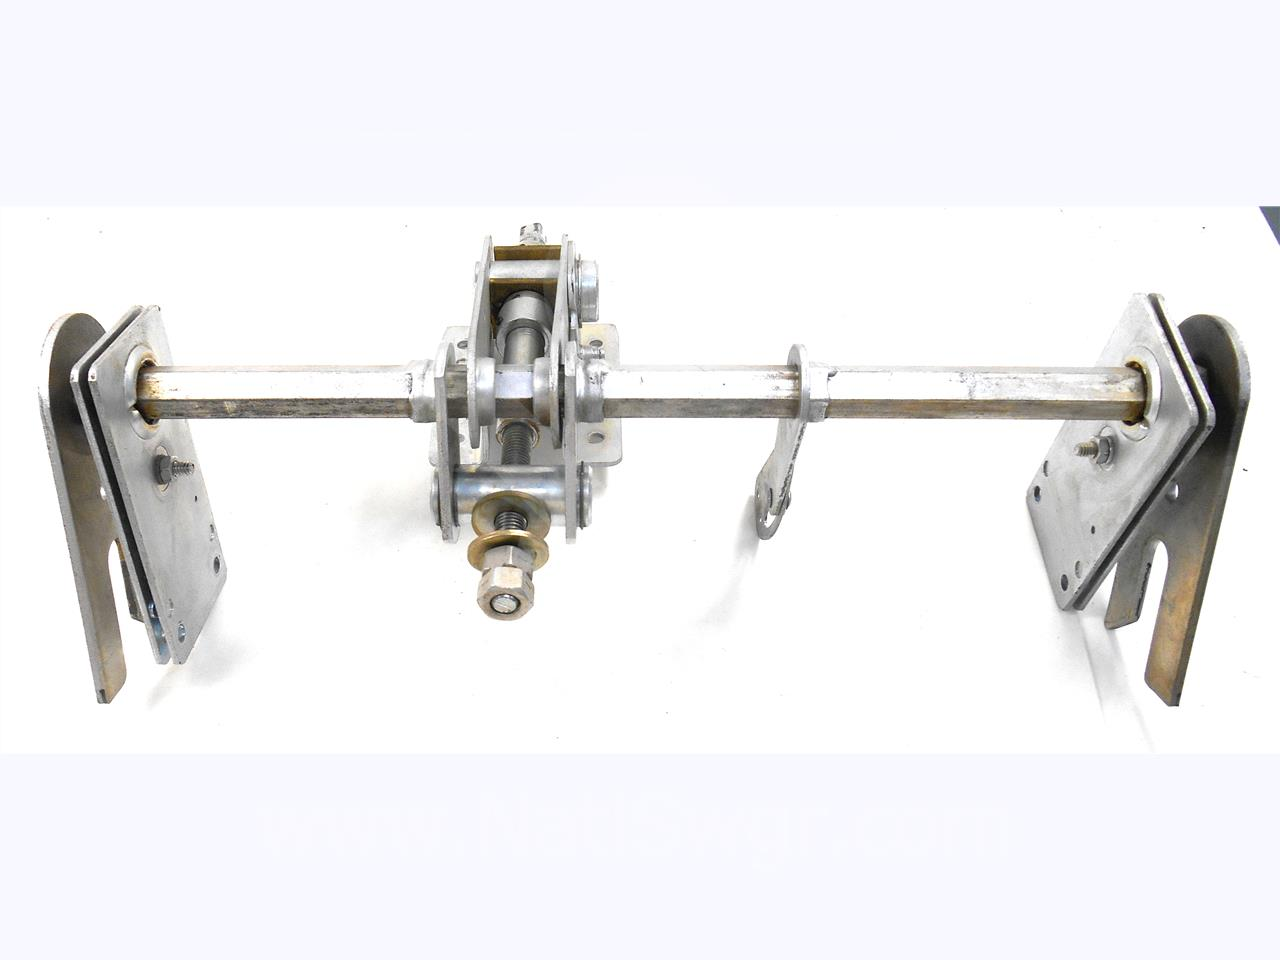 GE DRAW OUT RACKING MECHANISM ASSEMBLY